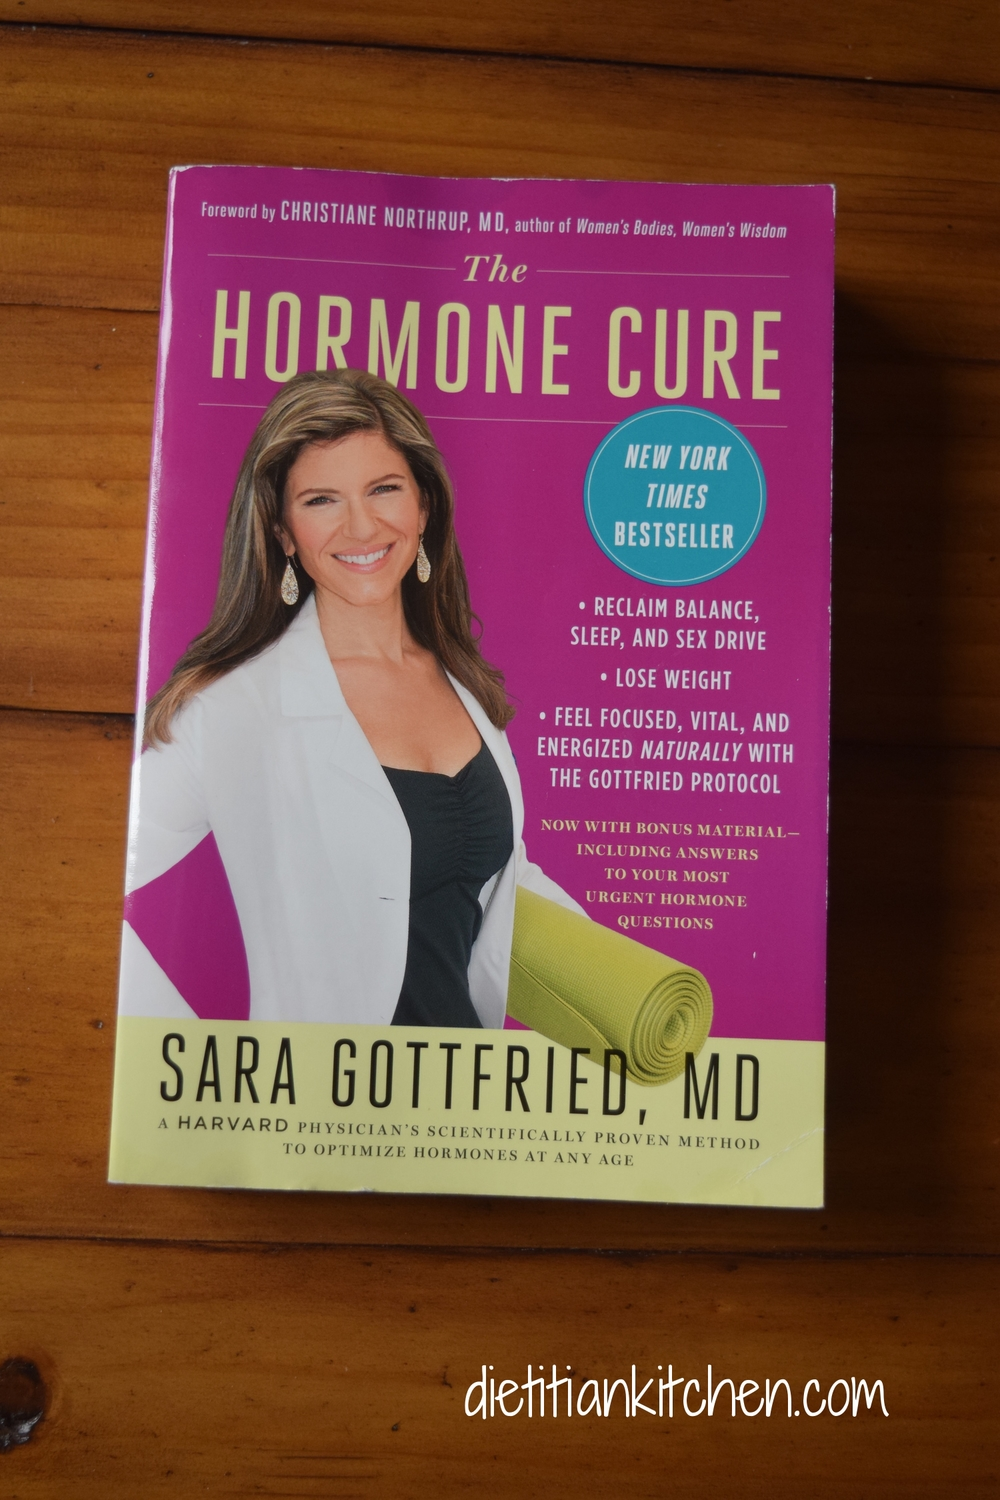 Living a healthy, energetic life is not just about diet and exercise, but is also about hormone balance. Learn about the questions you should be asking yourself and your doctor.